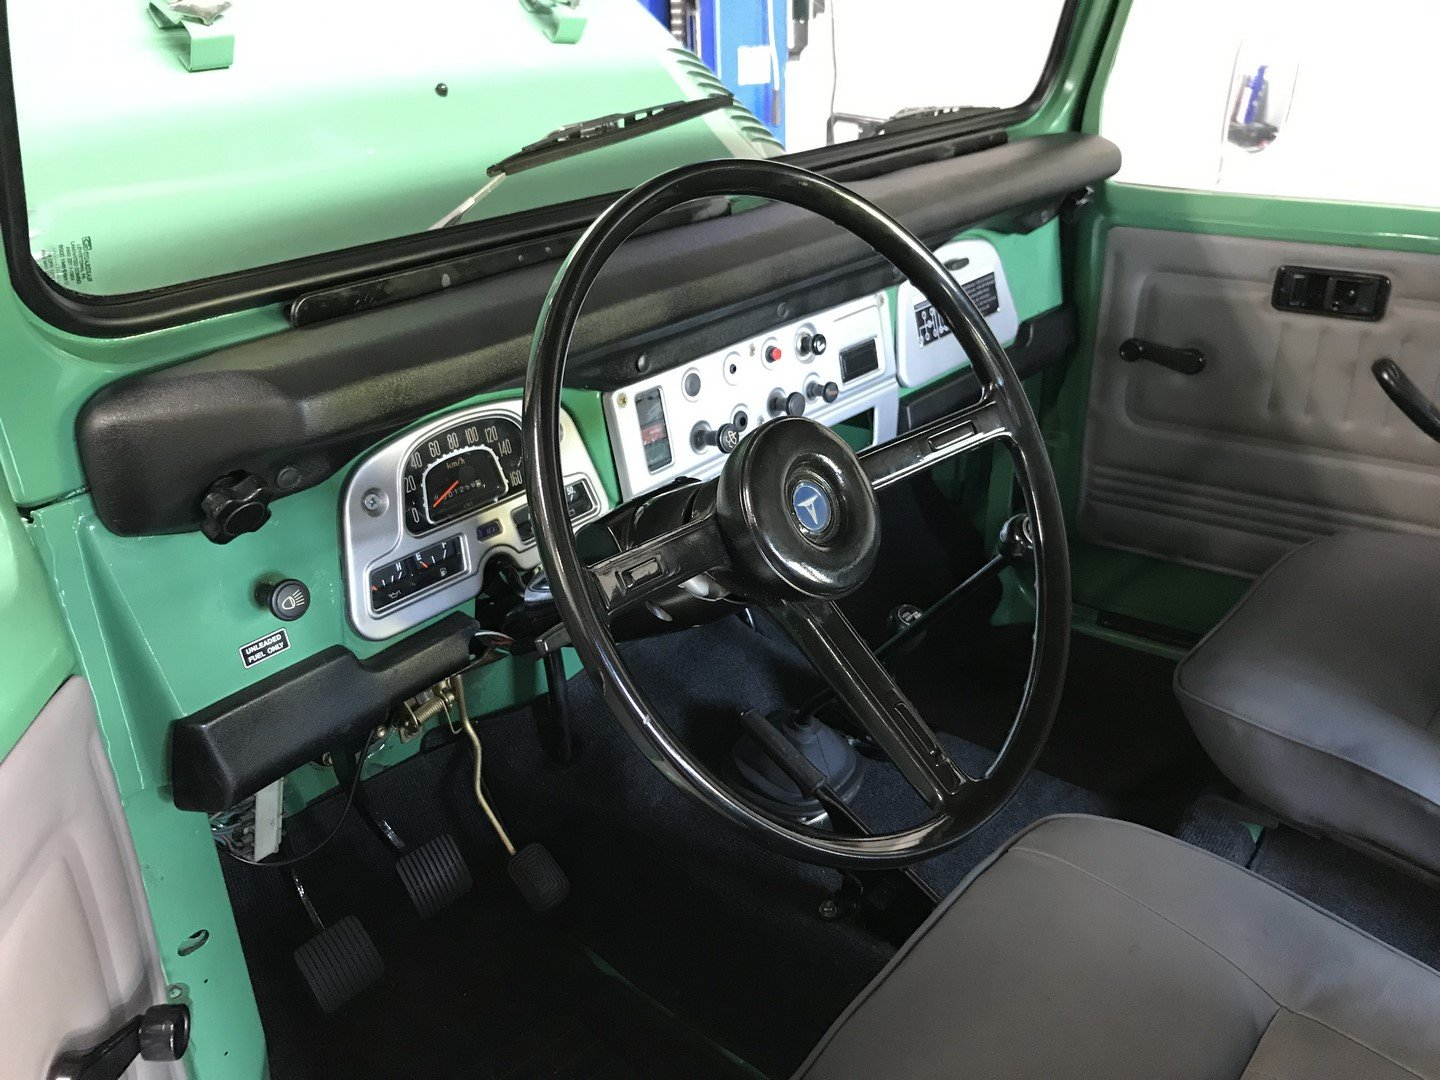 1980 TOYOTA LAND CRUISER FJ 40 4WD For Sale (picture 3 of 6)